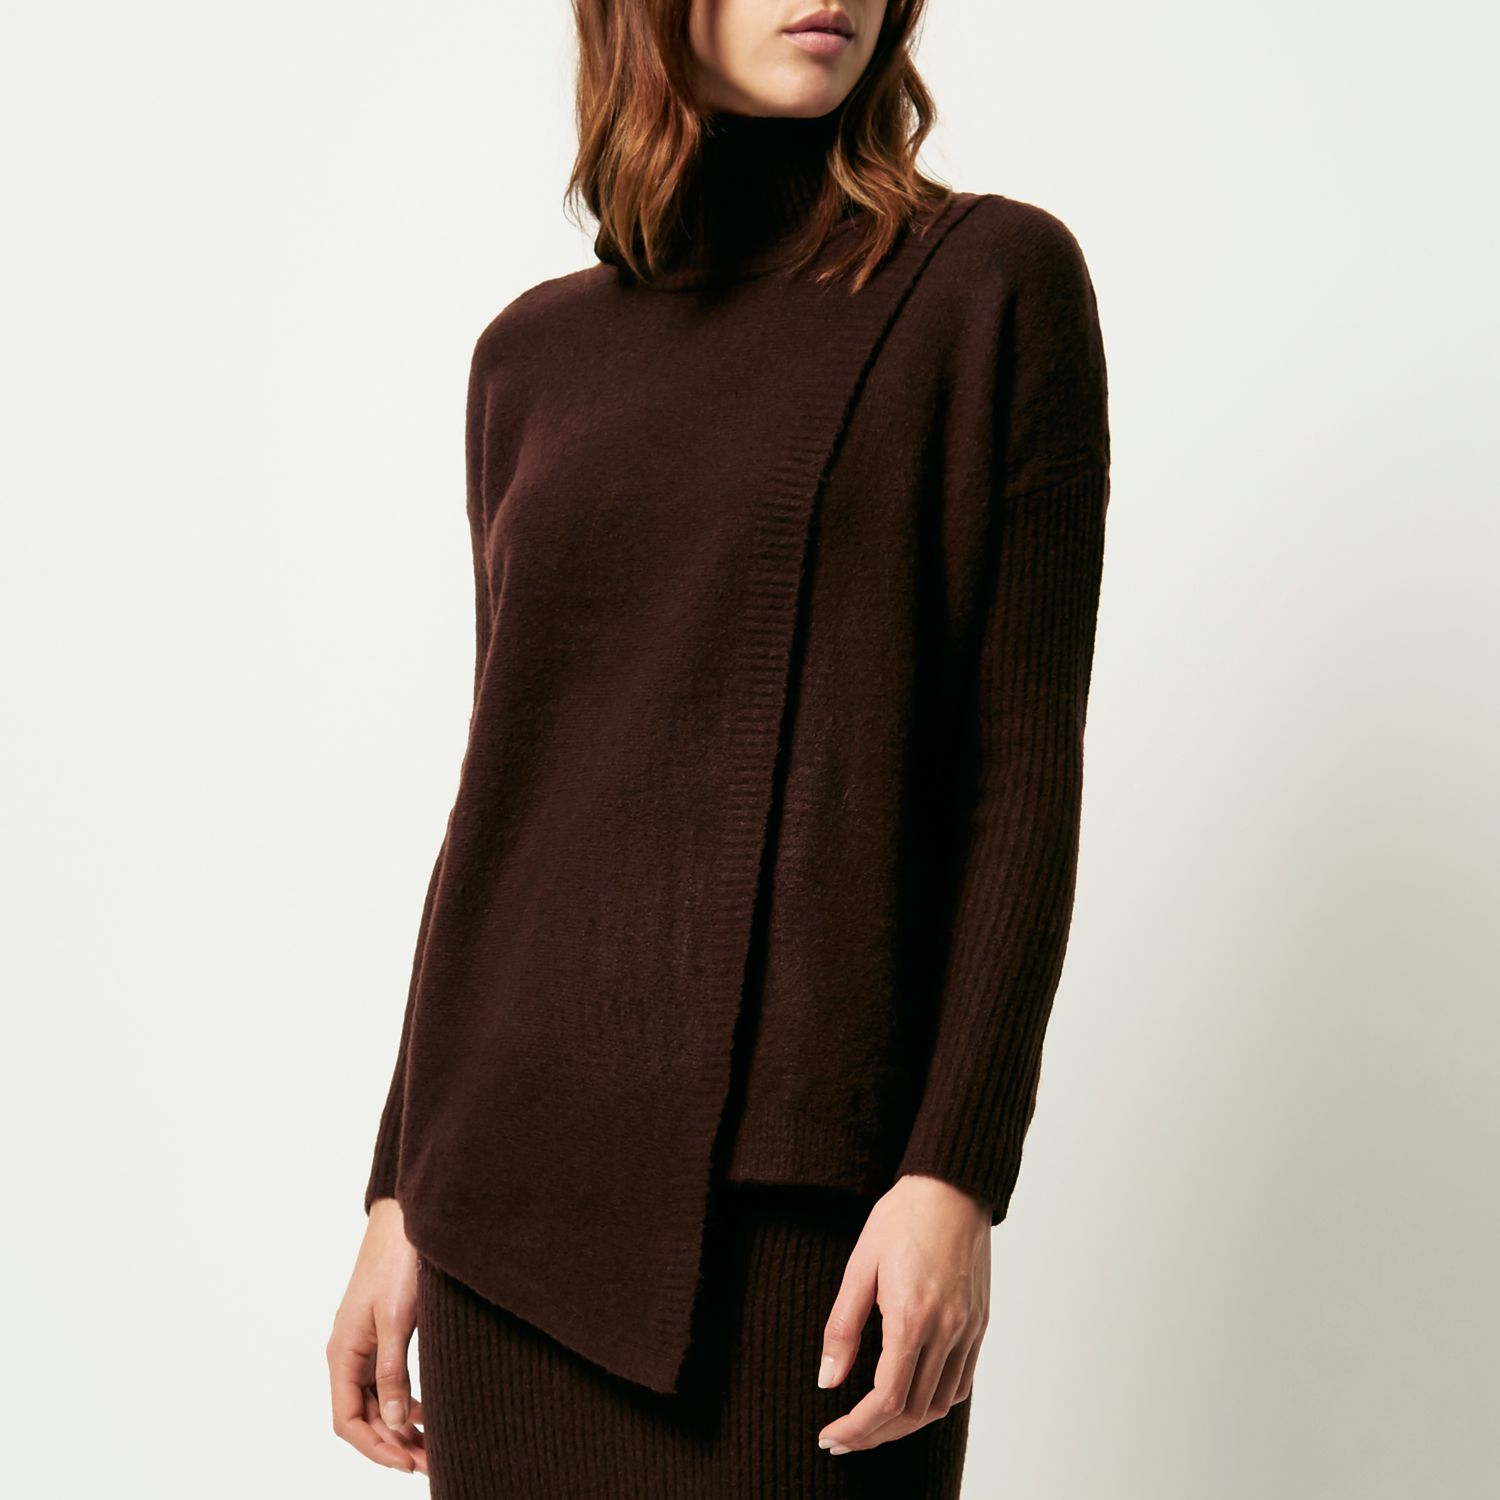 27c03635e6d653 Lyst - River Island Chocolate Brown Asymmetric Knitted Jumper in Brown